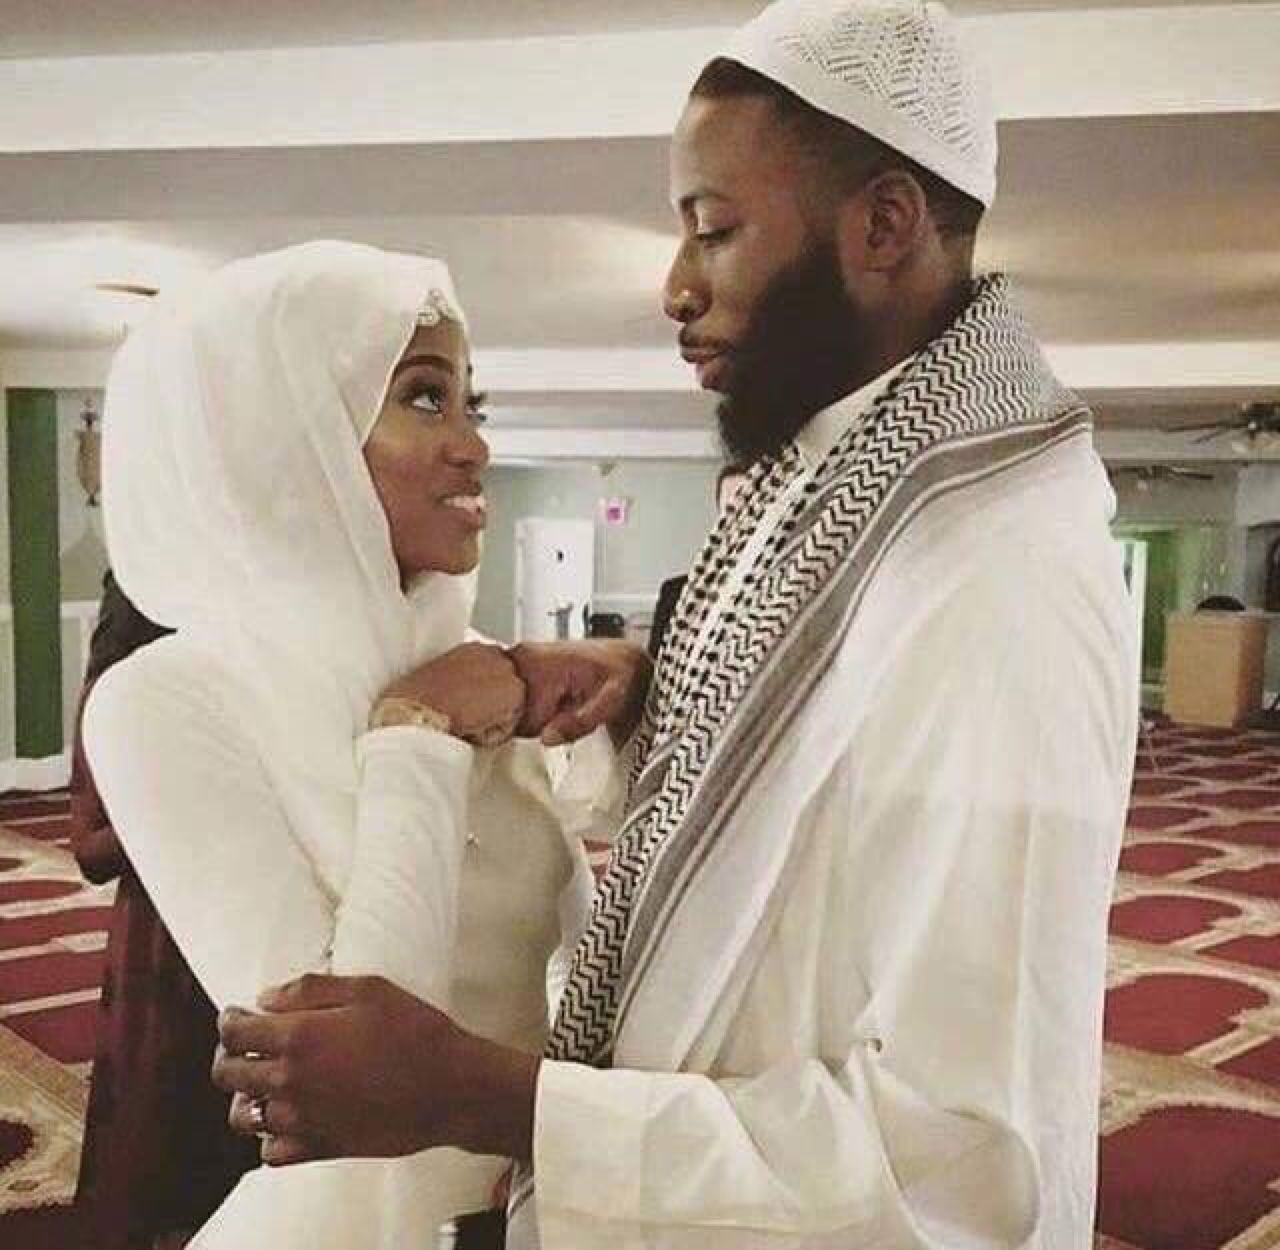 🏆 Muslim wedding uk